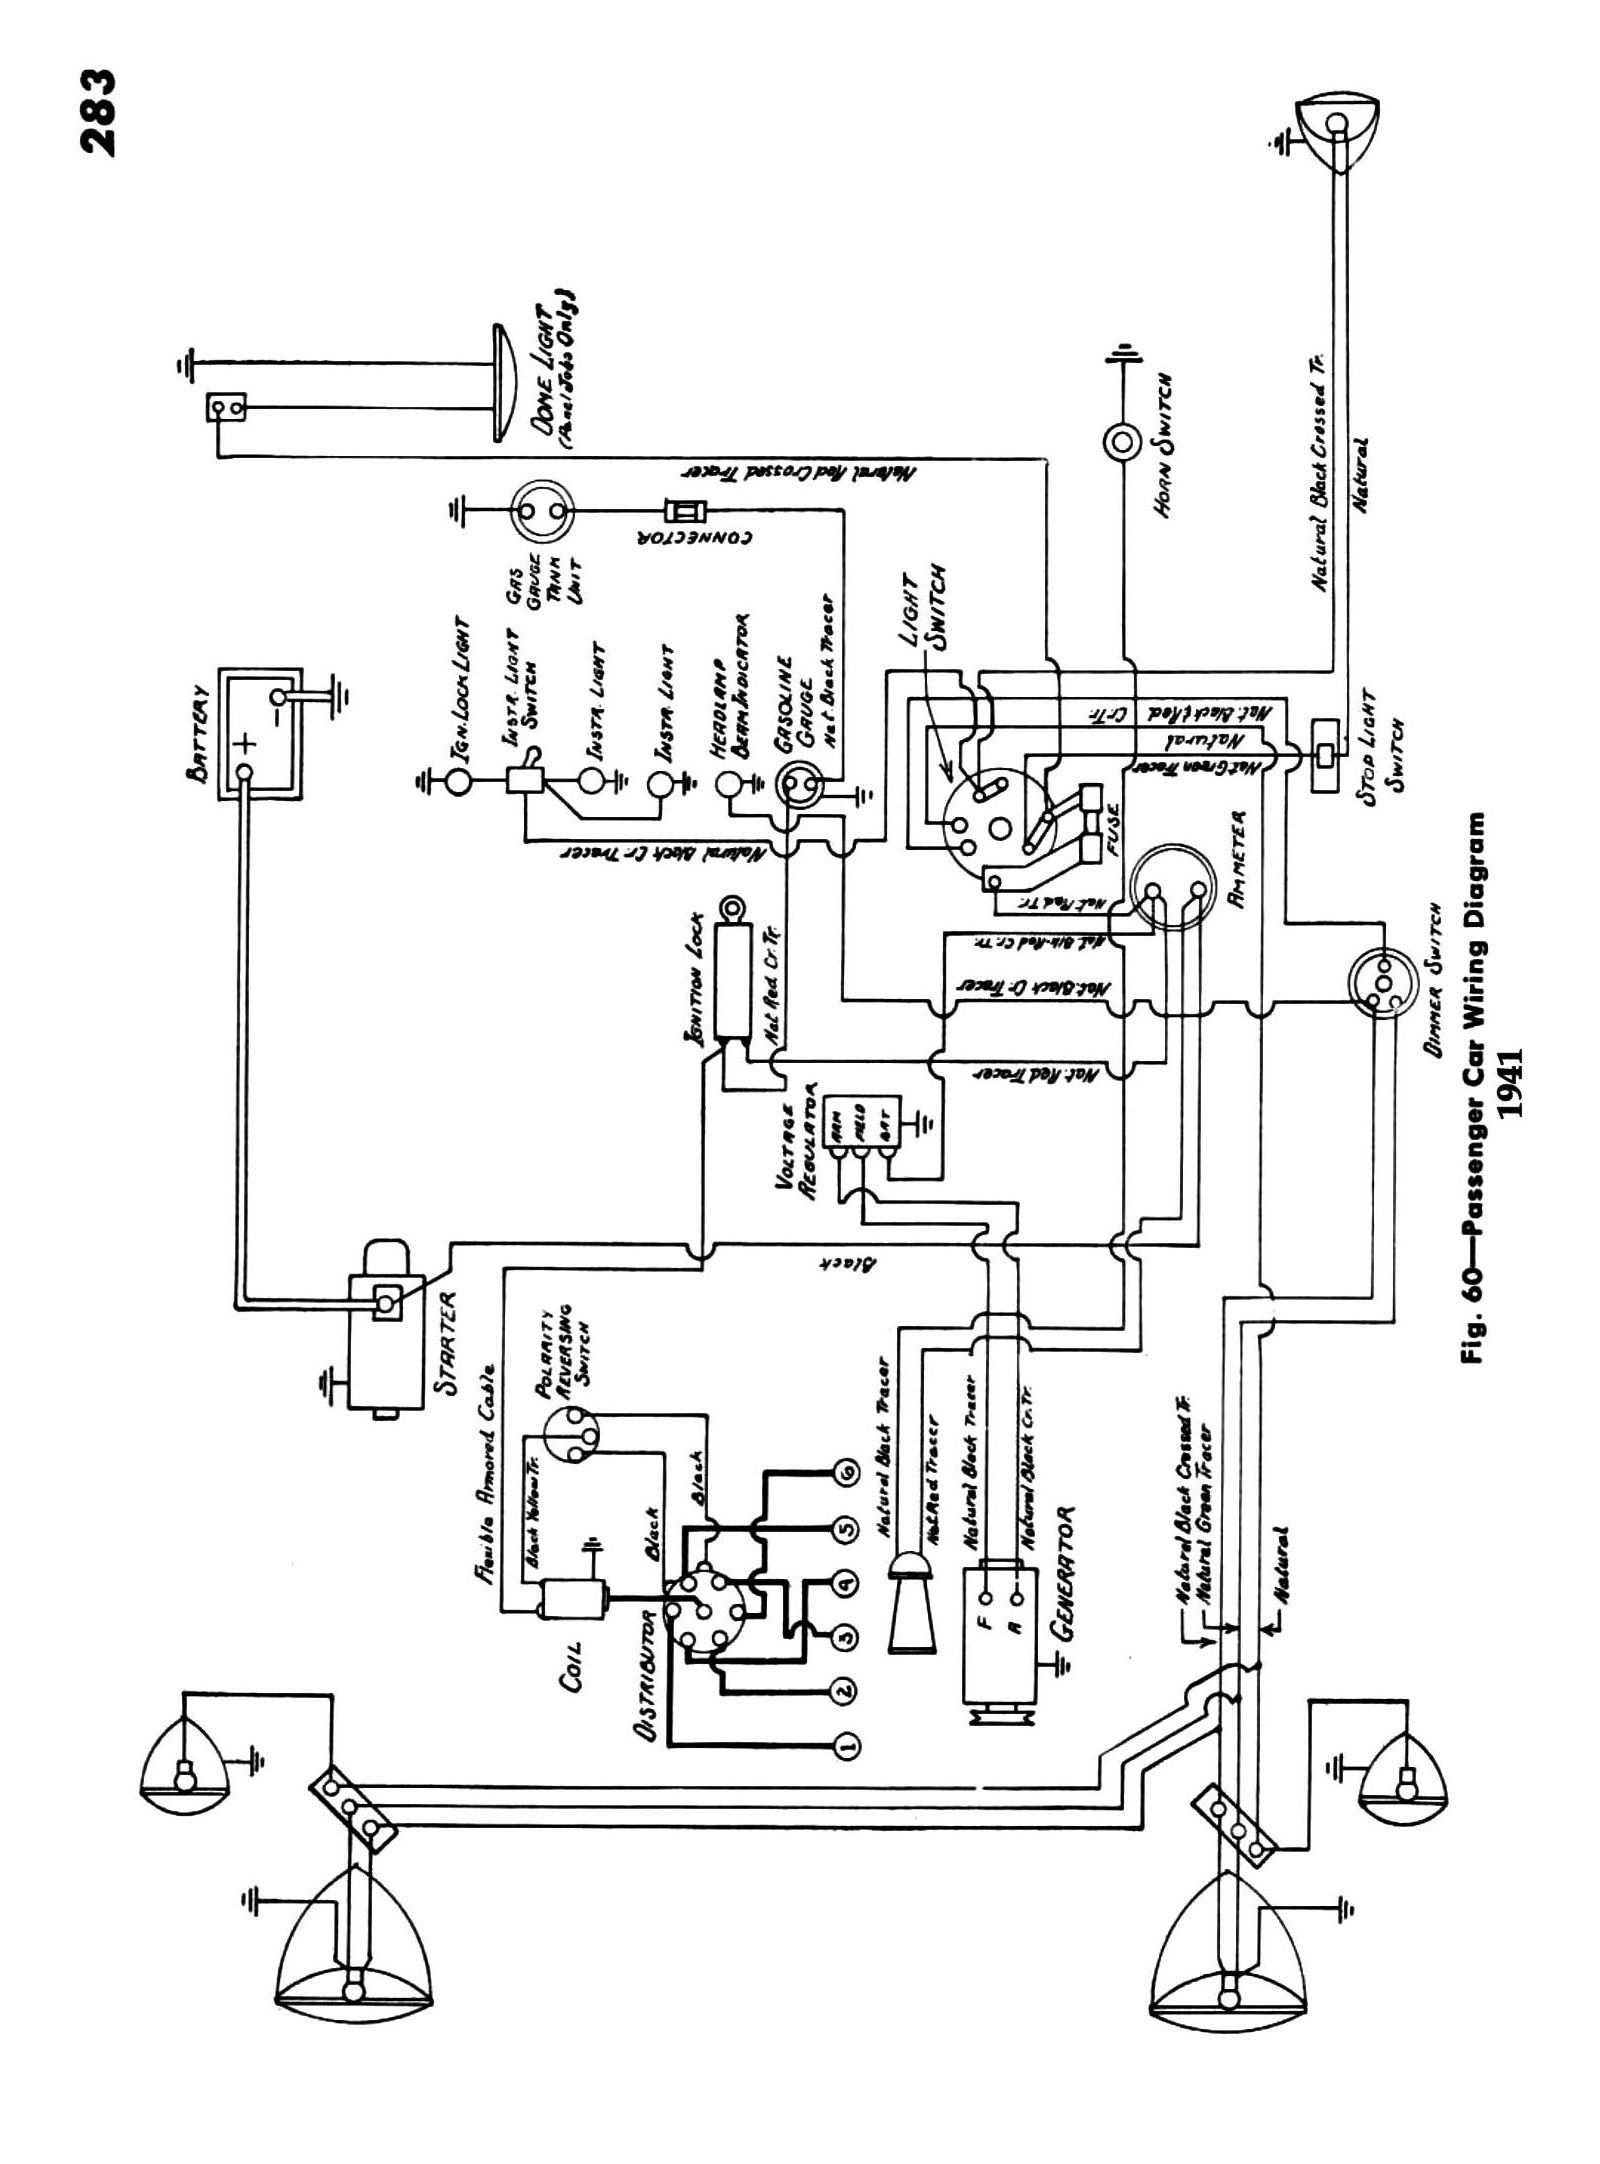 hight resolution of wrg 7297 auto diagram 1970 plymouth wiring 1960 chevy truck 1941 passenger car wiring chevy